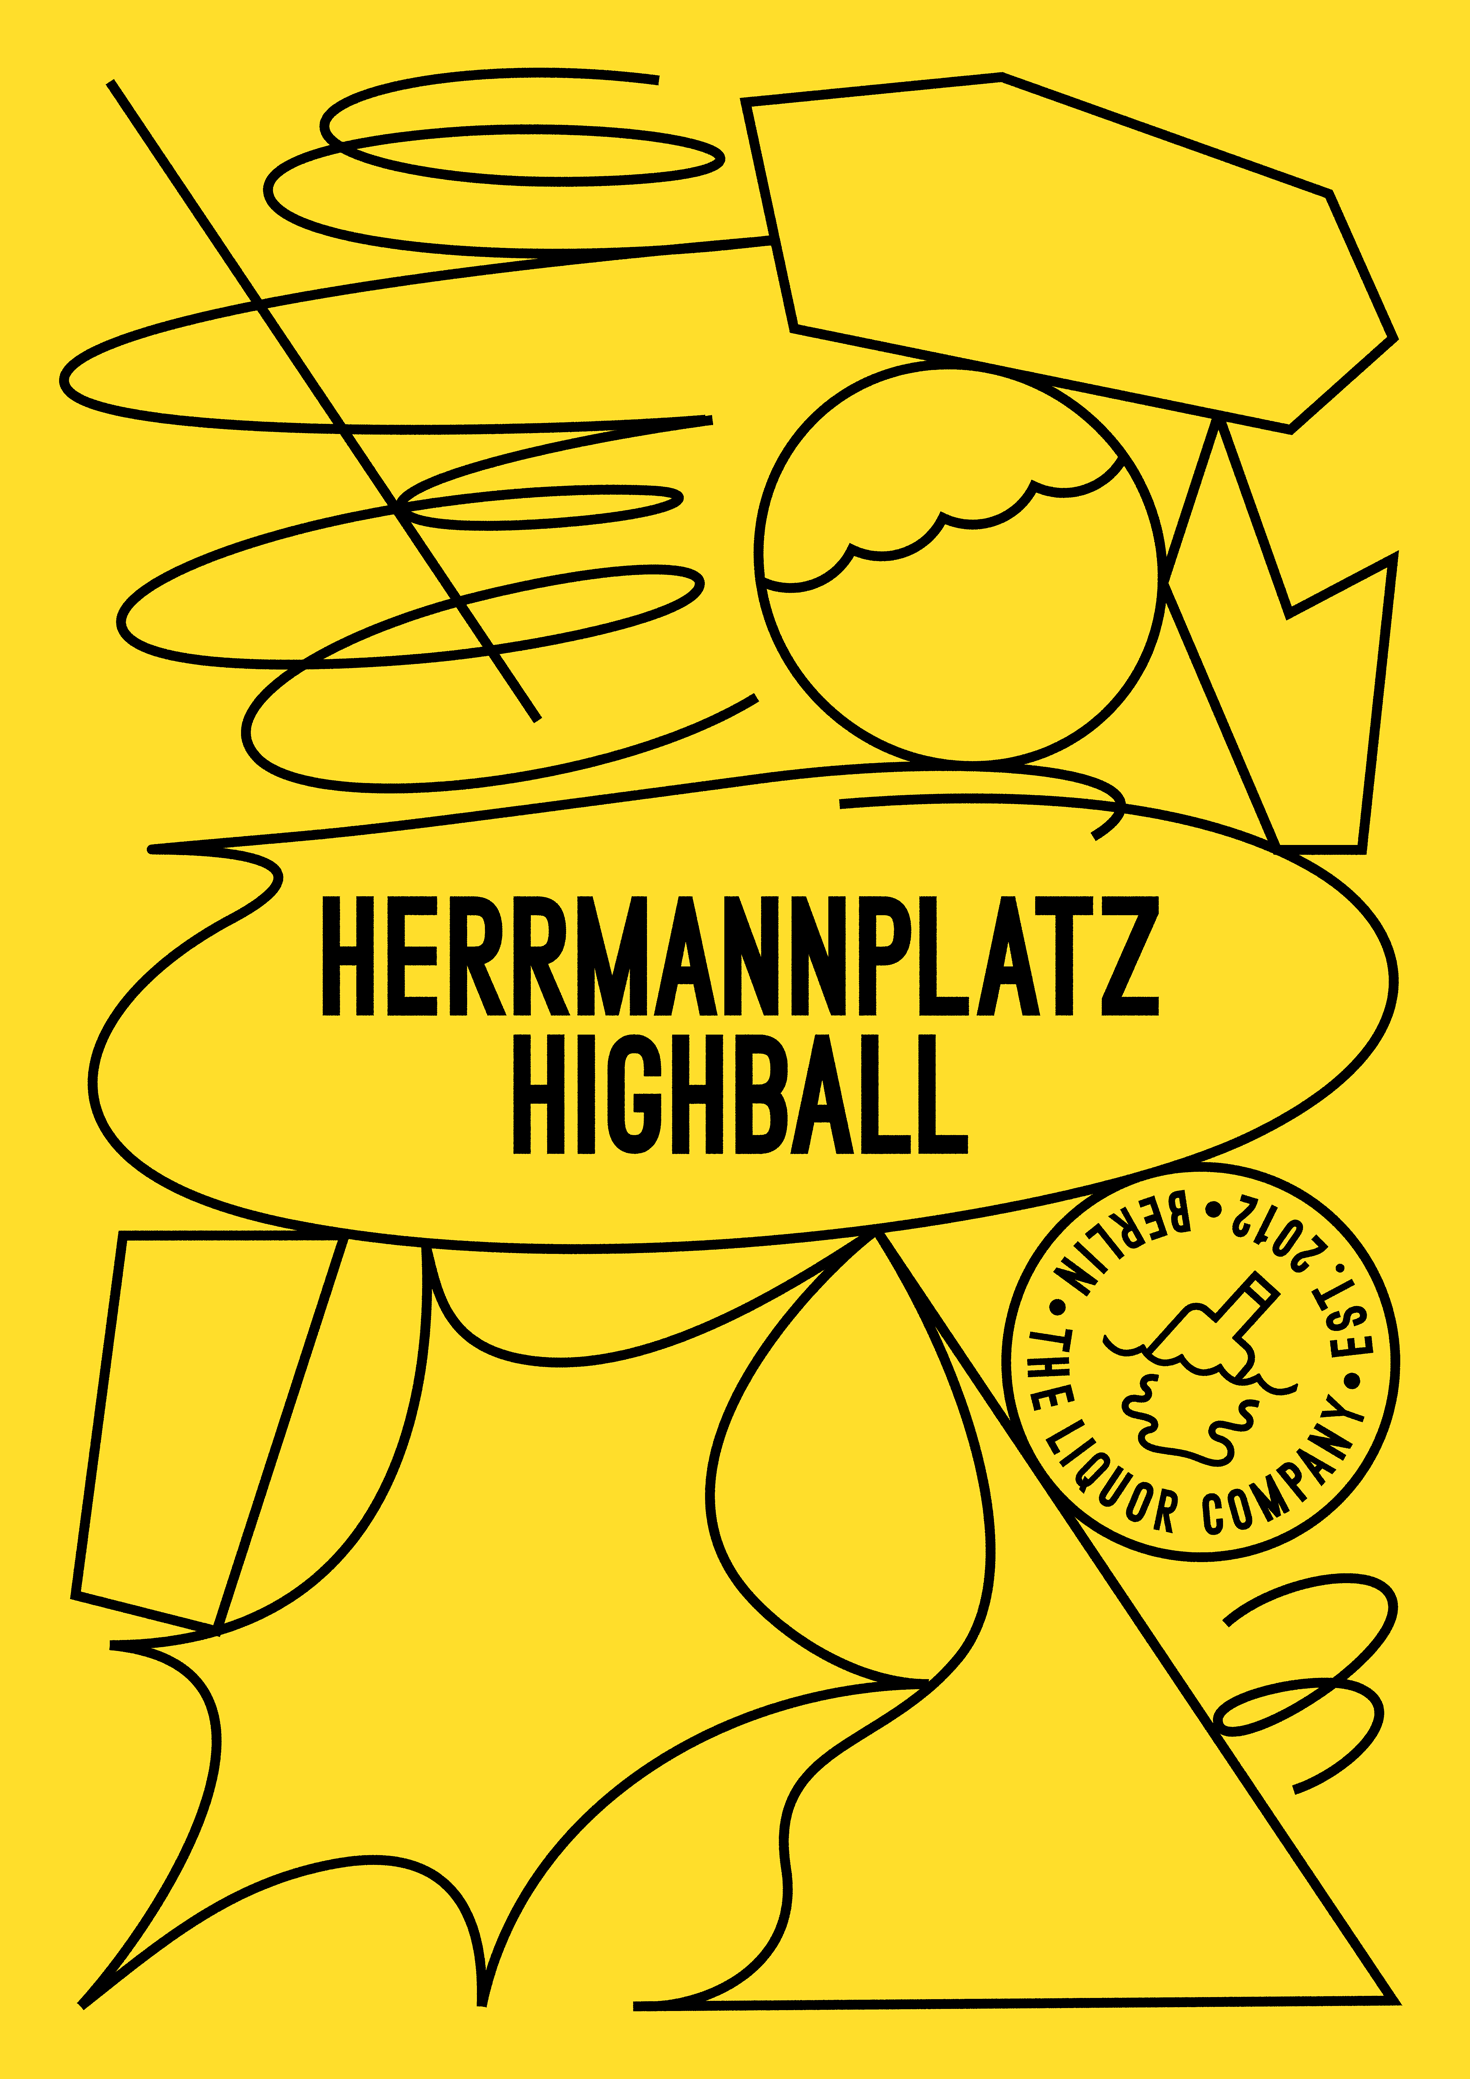 Hermannplatz Highball